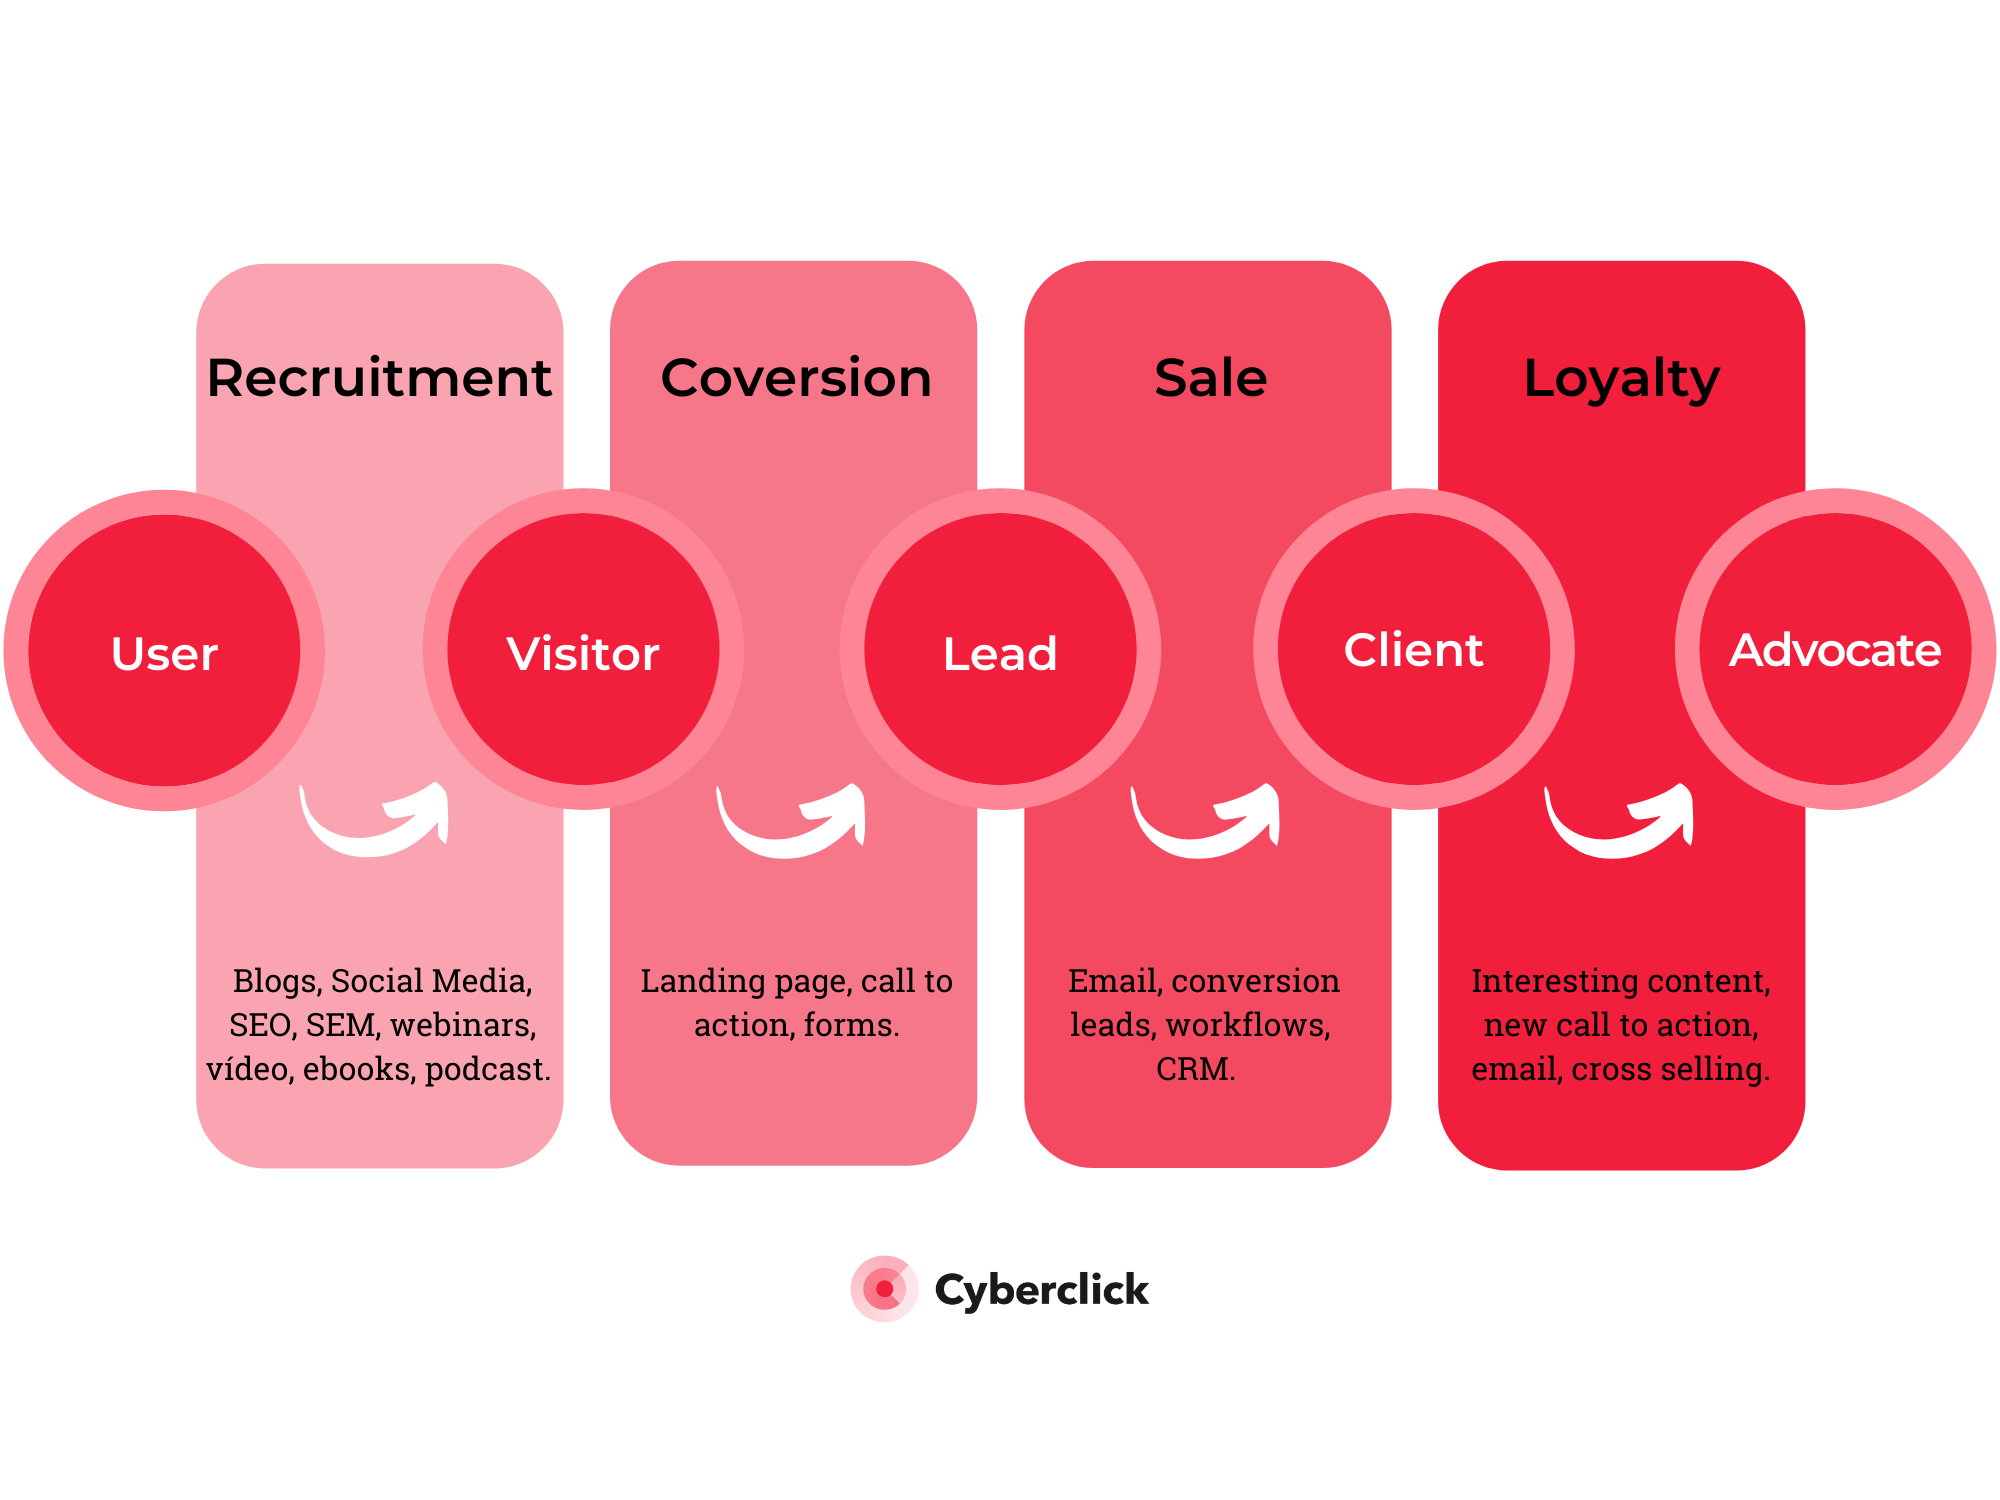 What content should you offer for each phase of the funnel?